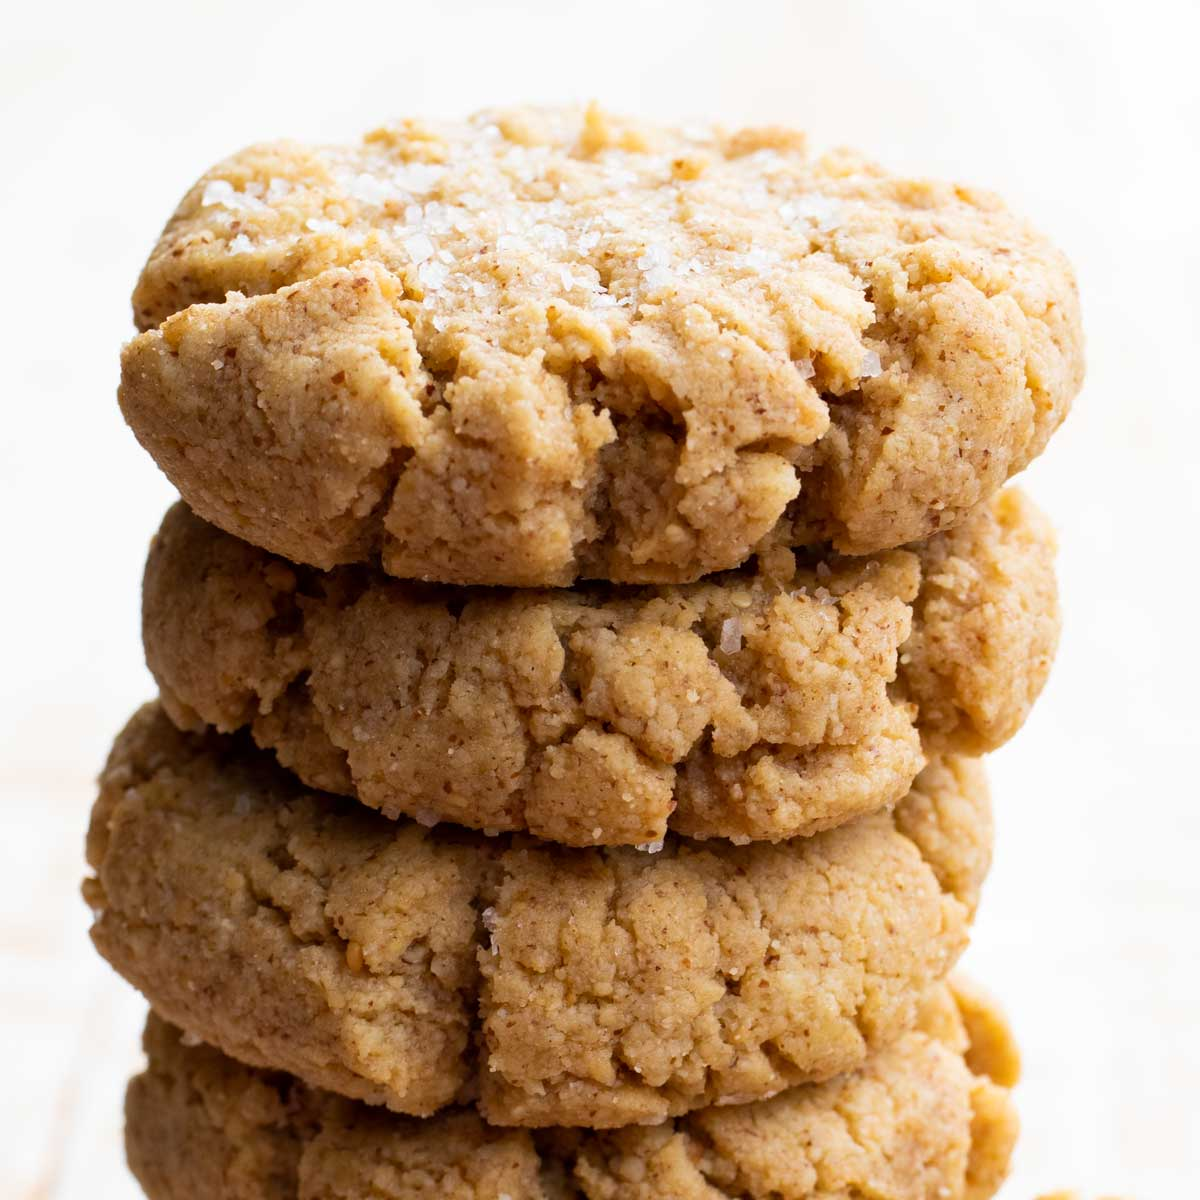 cookie recipe with almond flour and stevia Almond Flour Peanut Butter Cookies (Keto)